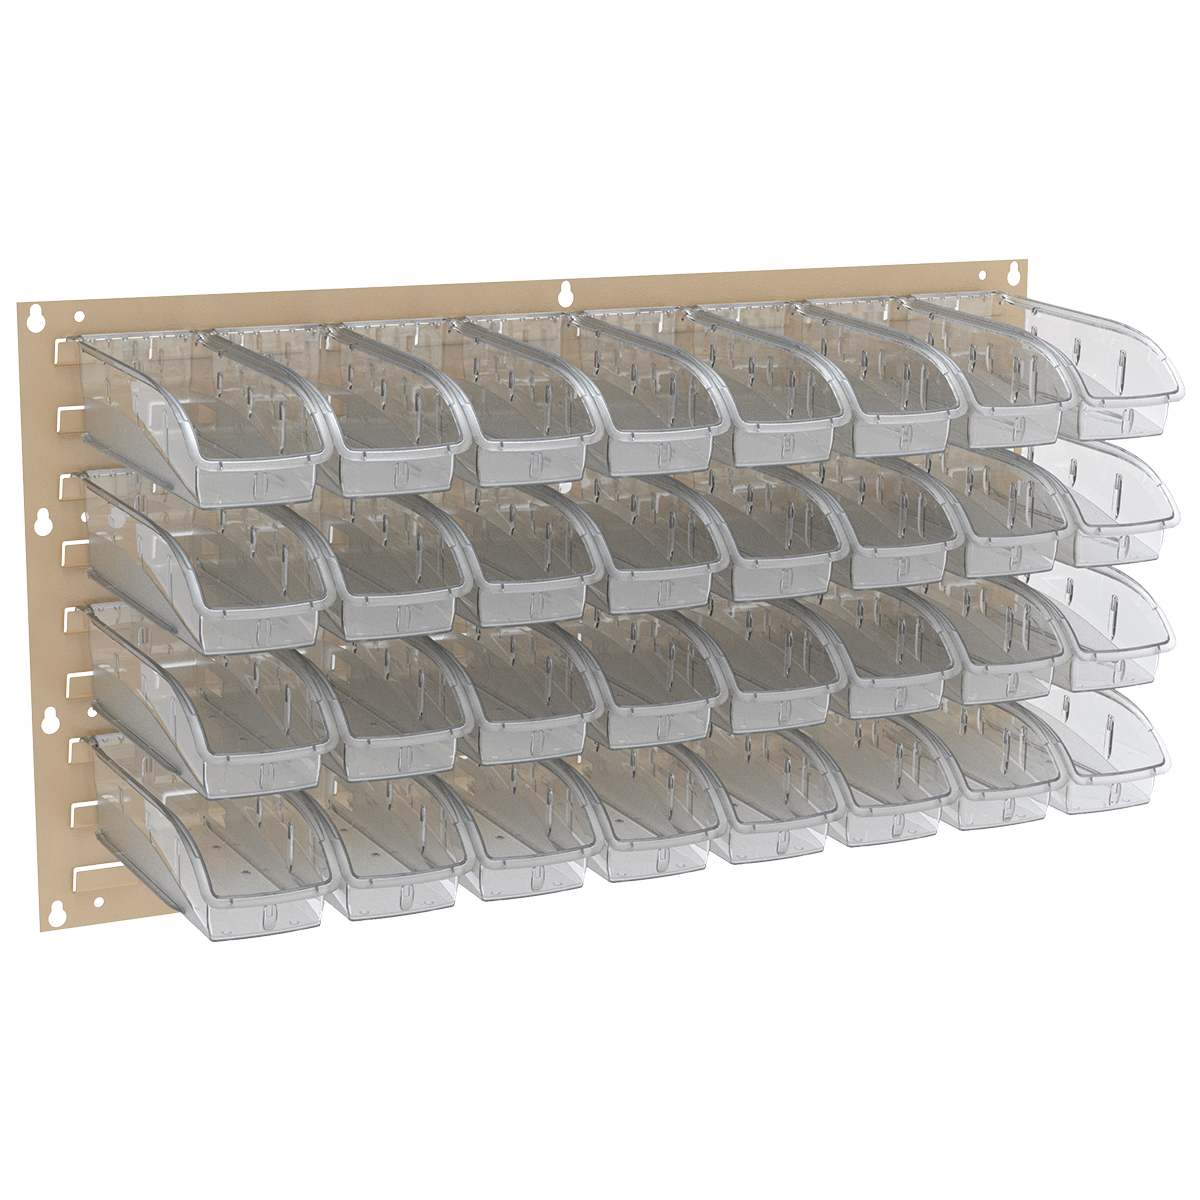 Item DISCONTINUED by Manufacturer.  Louvered Wall Panel, 35-3/4 x 19, w/ 32 InSight Bins 305A5, Gray/Clear (30636BEIGEA5).  This item sold in carton quantities of 1.